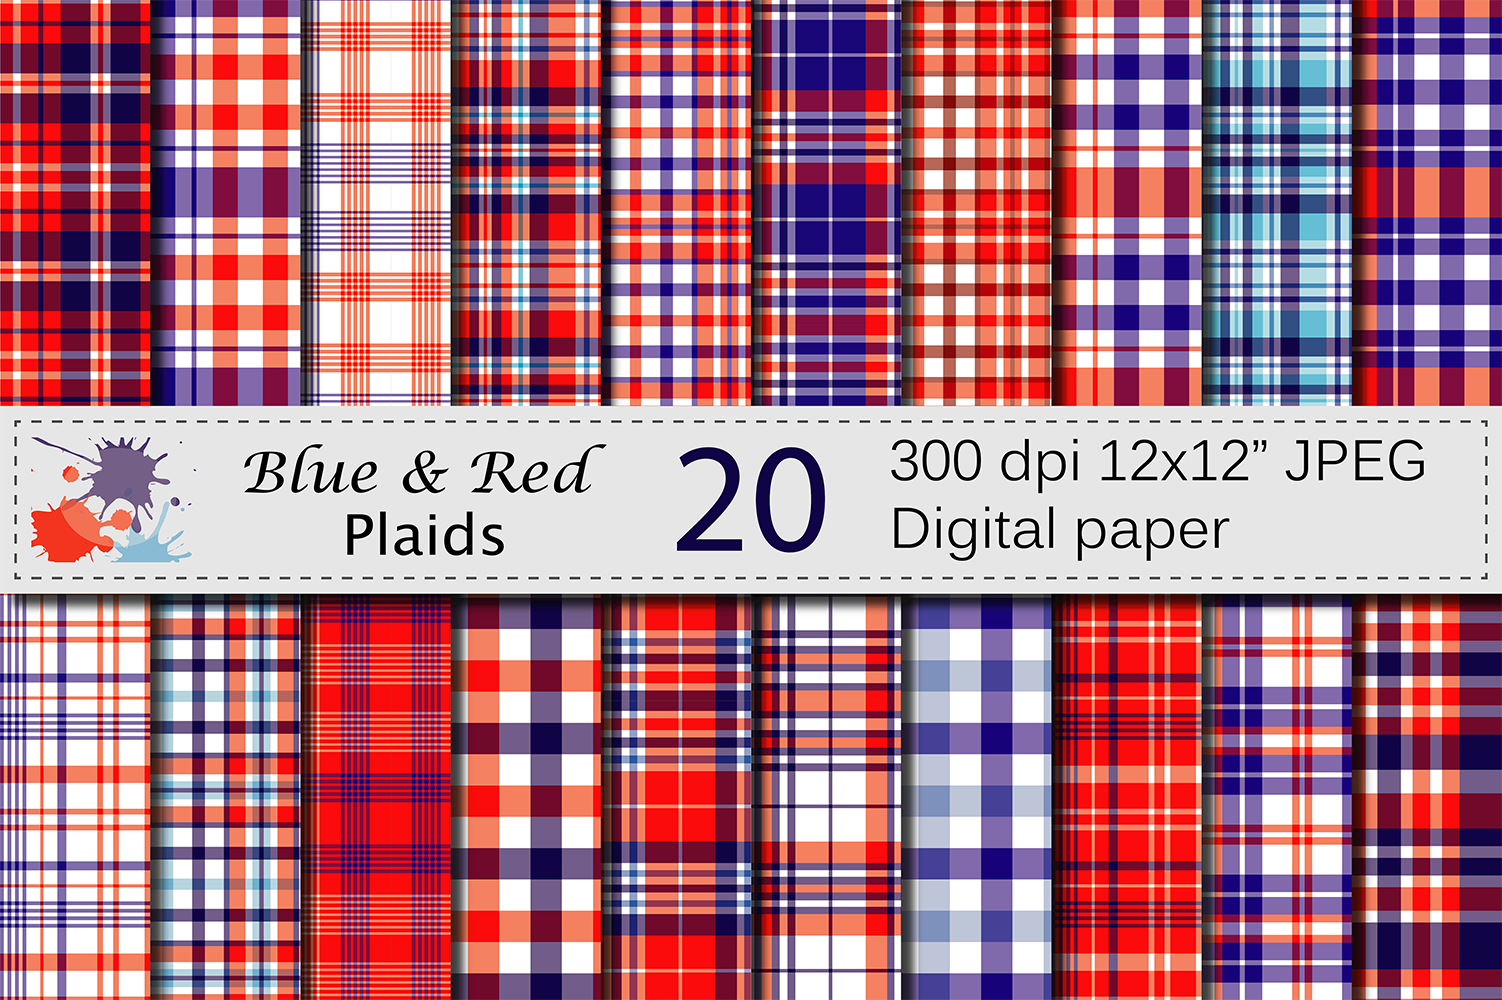 Blue and Red USA 4th of July Patriotic Plaid Digital Paper Pack / Independence Day Plaid Backgrounds Graphic Backgrounds By VR Digital Design